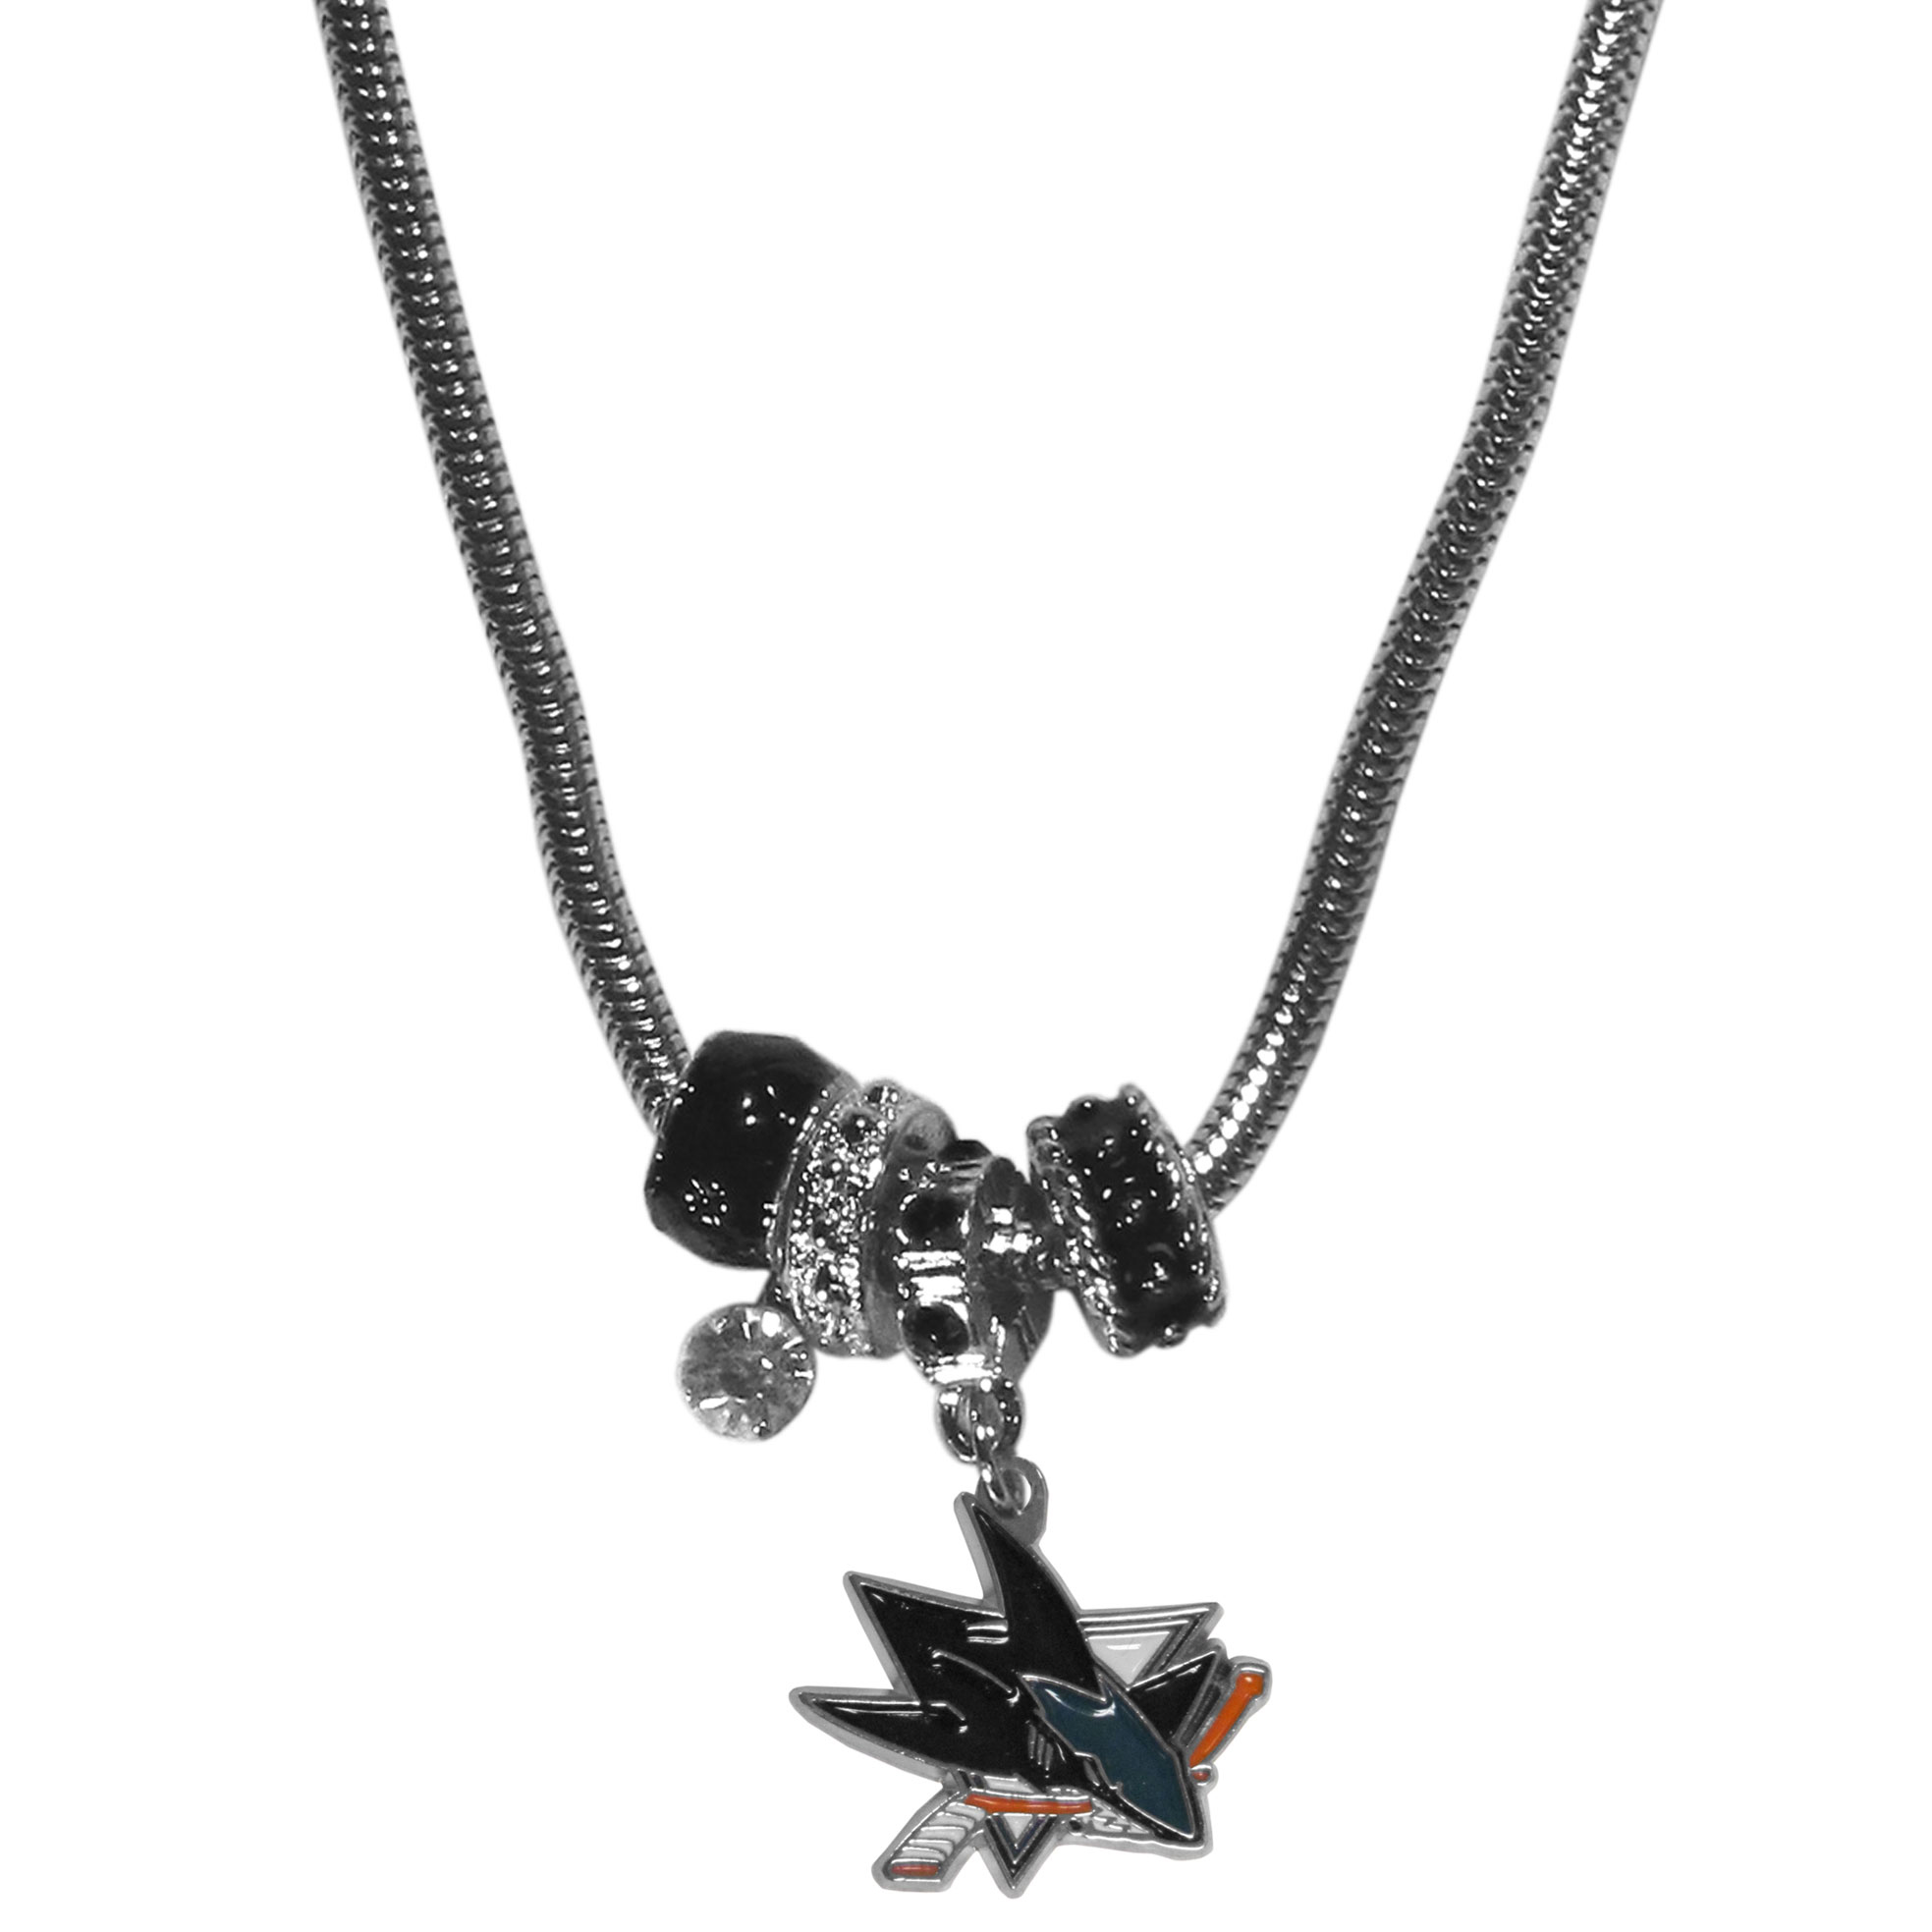 San Jose Sharks Euro Bead Necklace - We have combined the wildly popular Euro style beads with your favorite team to create our San Jose Sharks euro bead necklace. The 18 inch snake chain features 4 Euro beads with enameled San Jose Sharks colors and rhinestone accents with a high polish, nickel free charm and rhinestone charm. Perfect way to show off your San Jose Sharks pride.